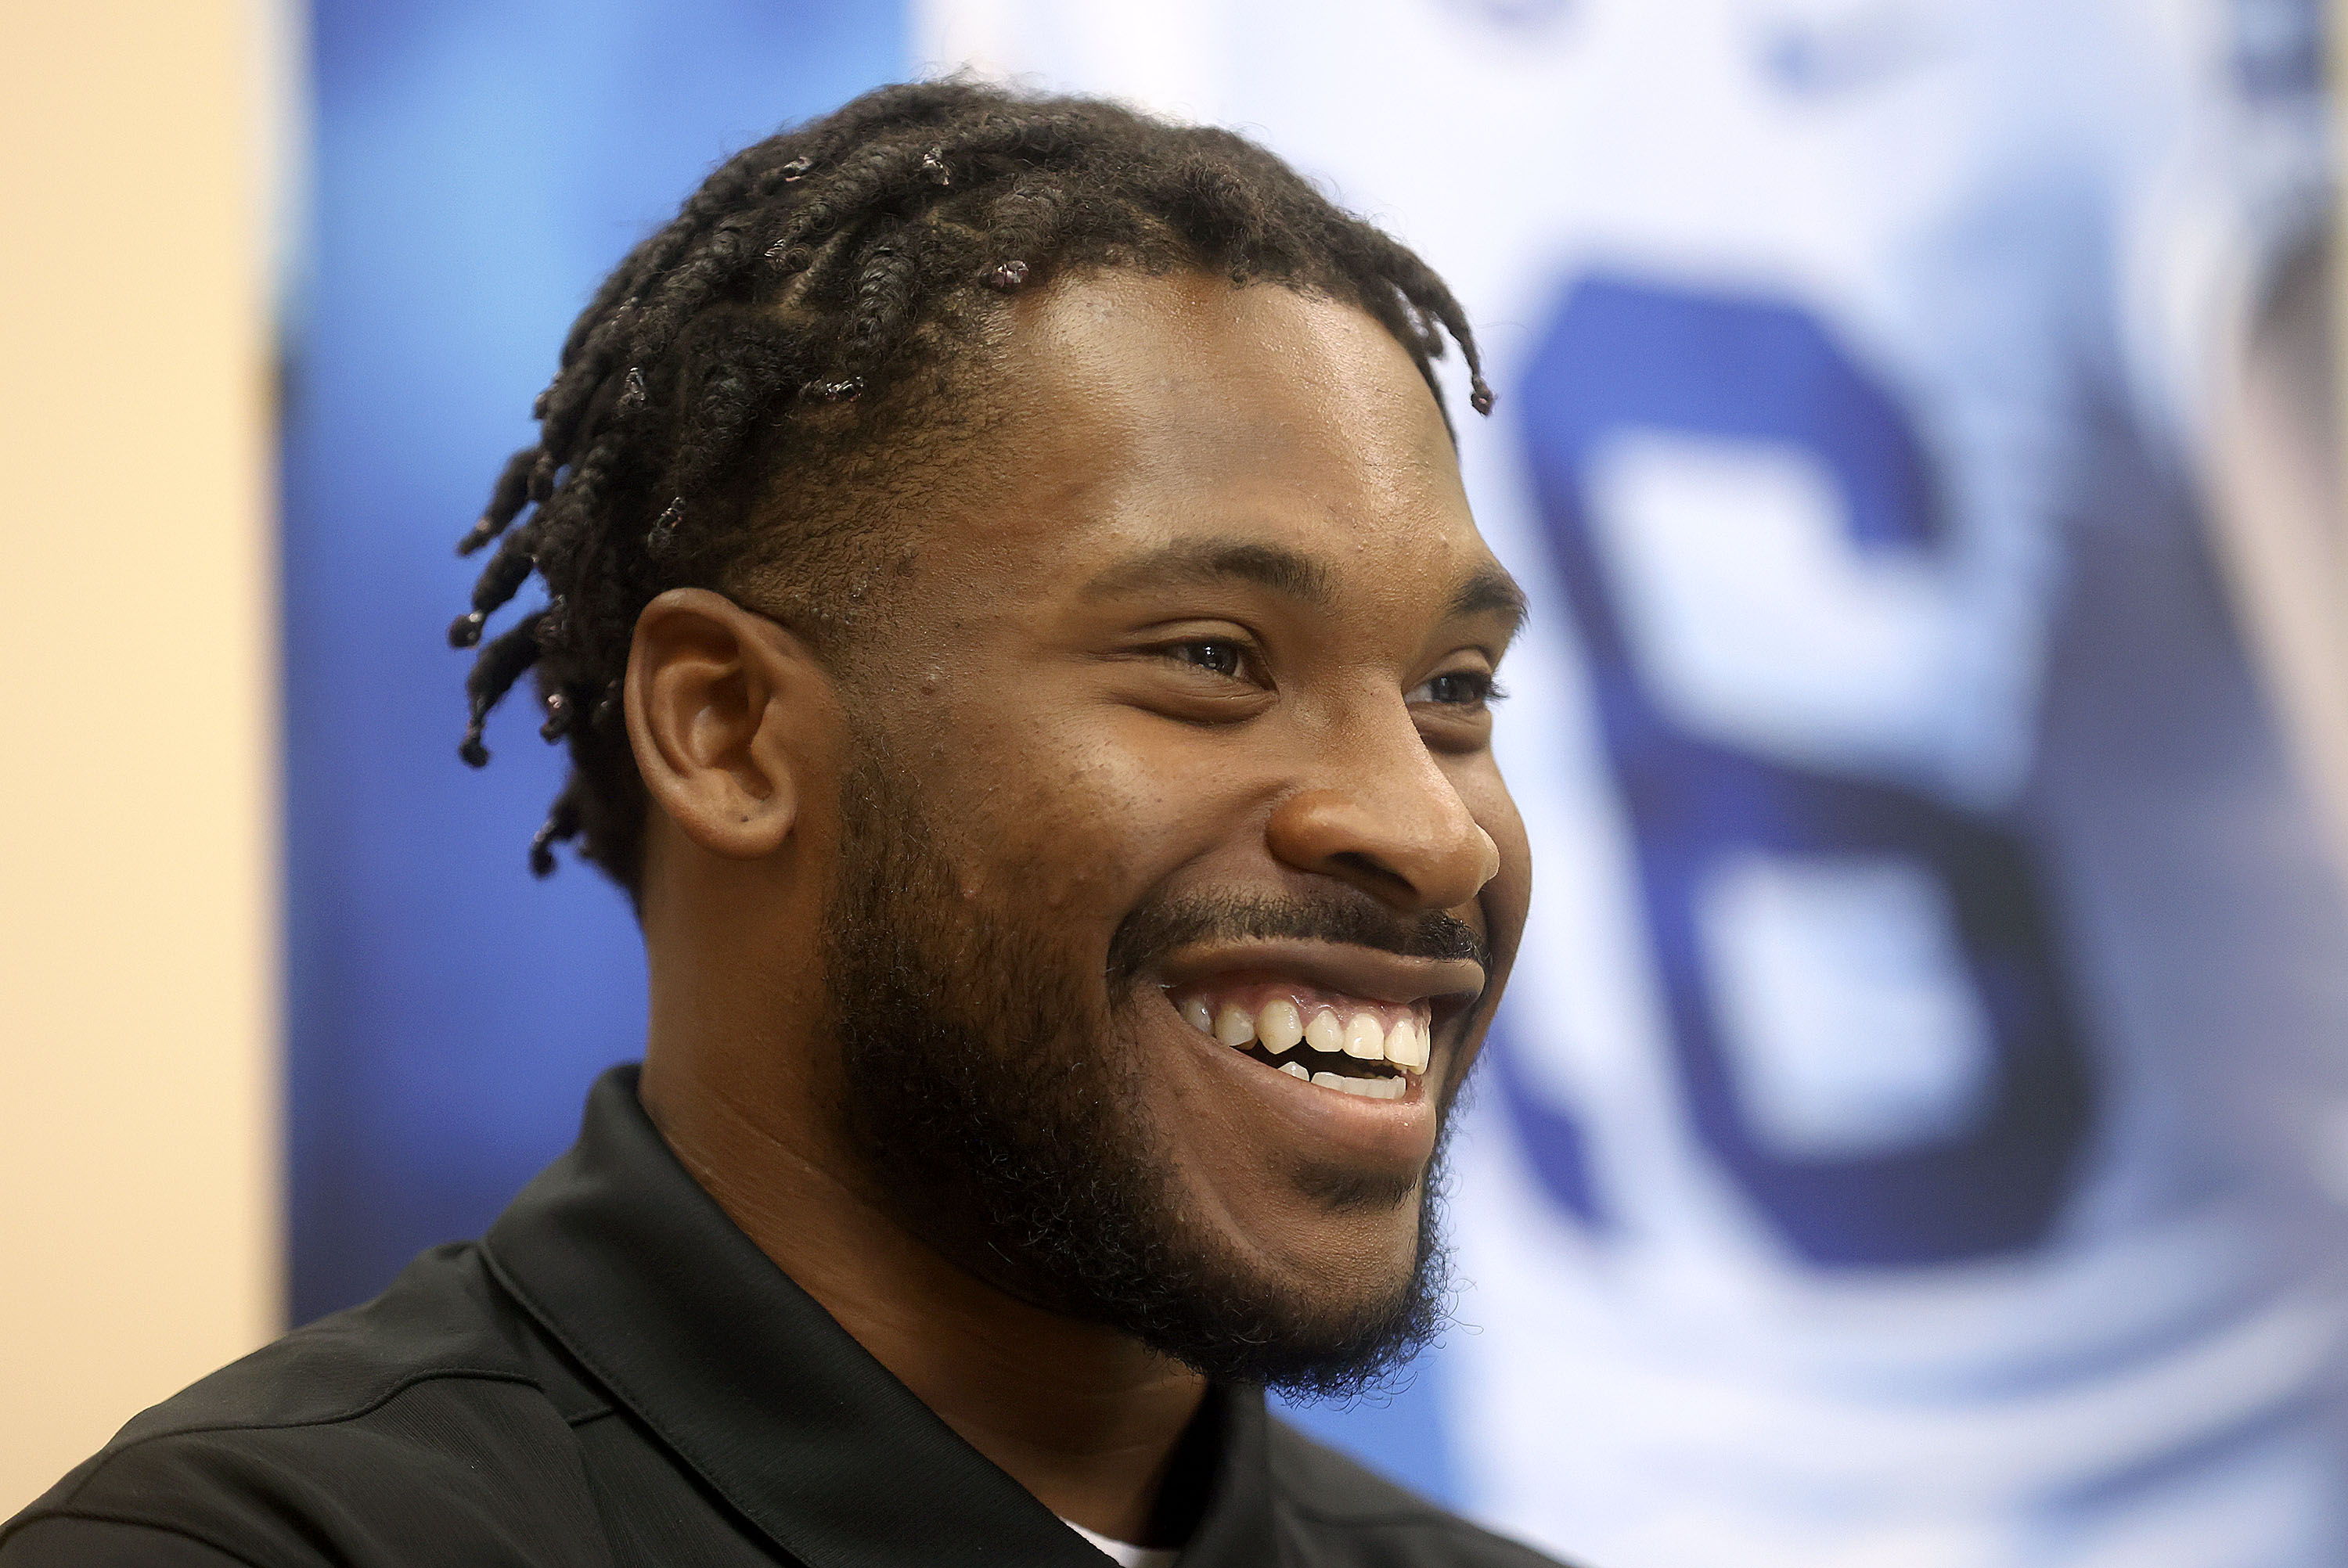 BYU cornerback Keenan Ellis talks to media during BYU media day at the BYU Broadcasting Building in Provo on June 17, 2021.